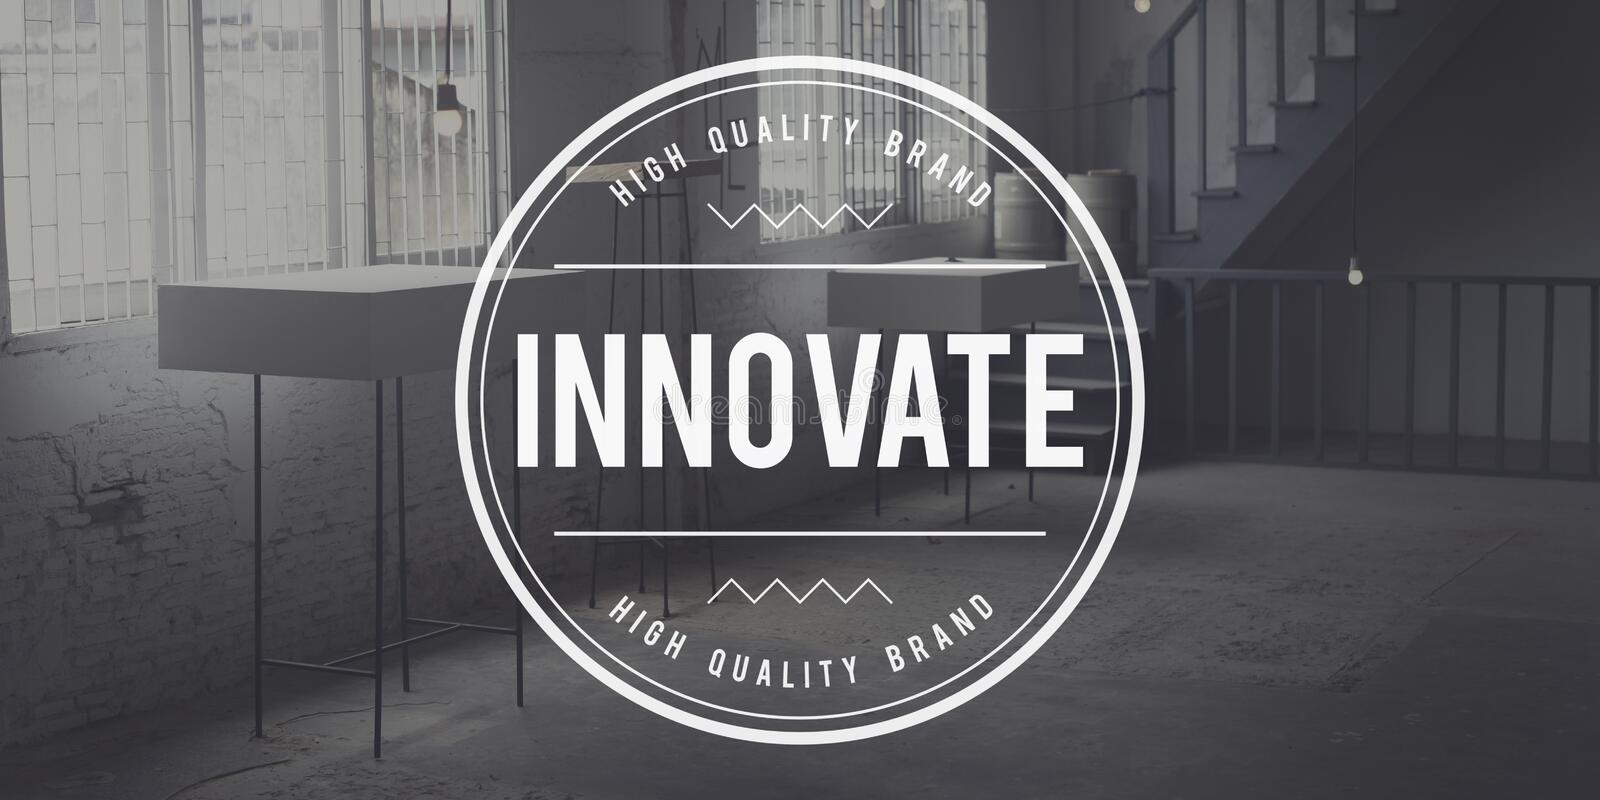 Innovate Innovation Technology Development Aspiration Concept royalty free stock image